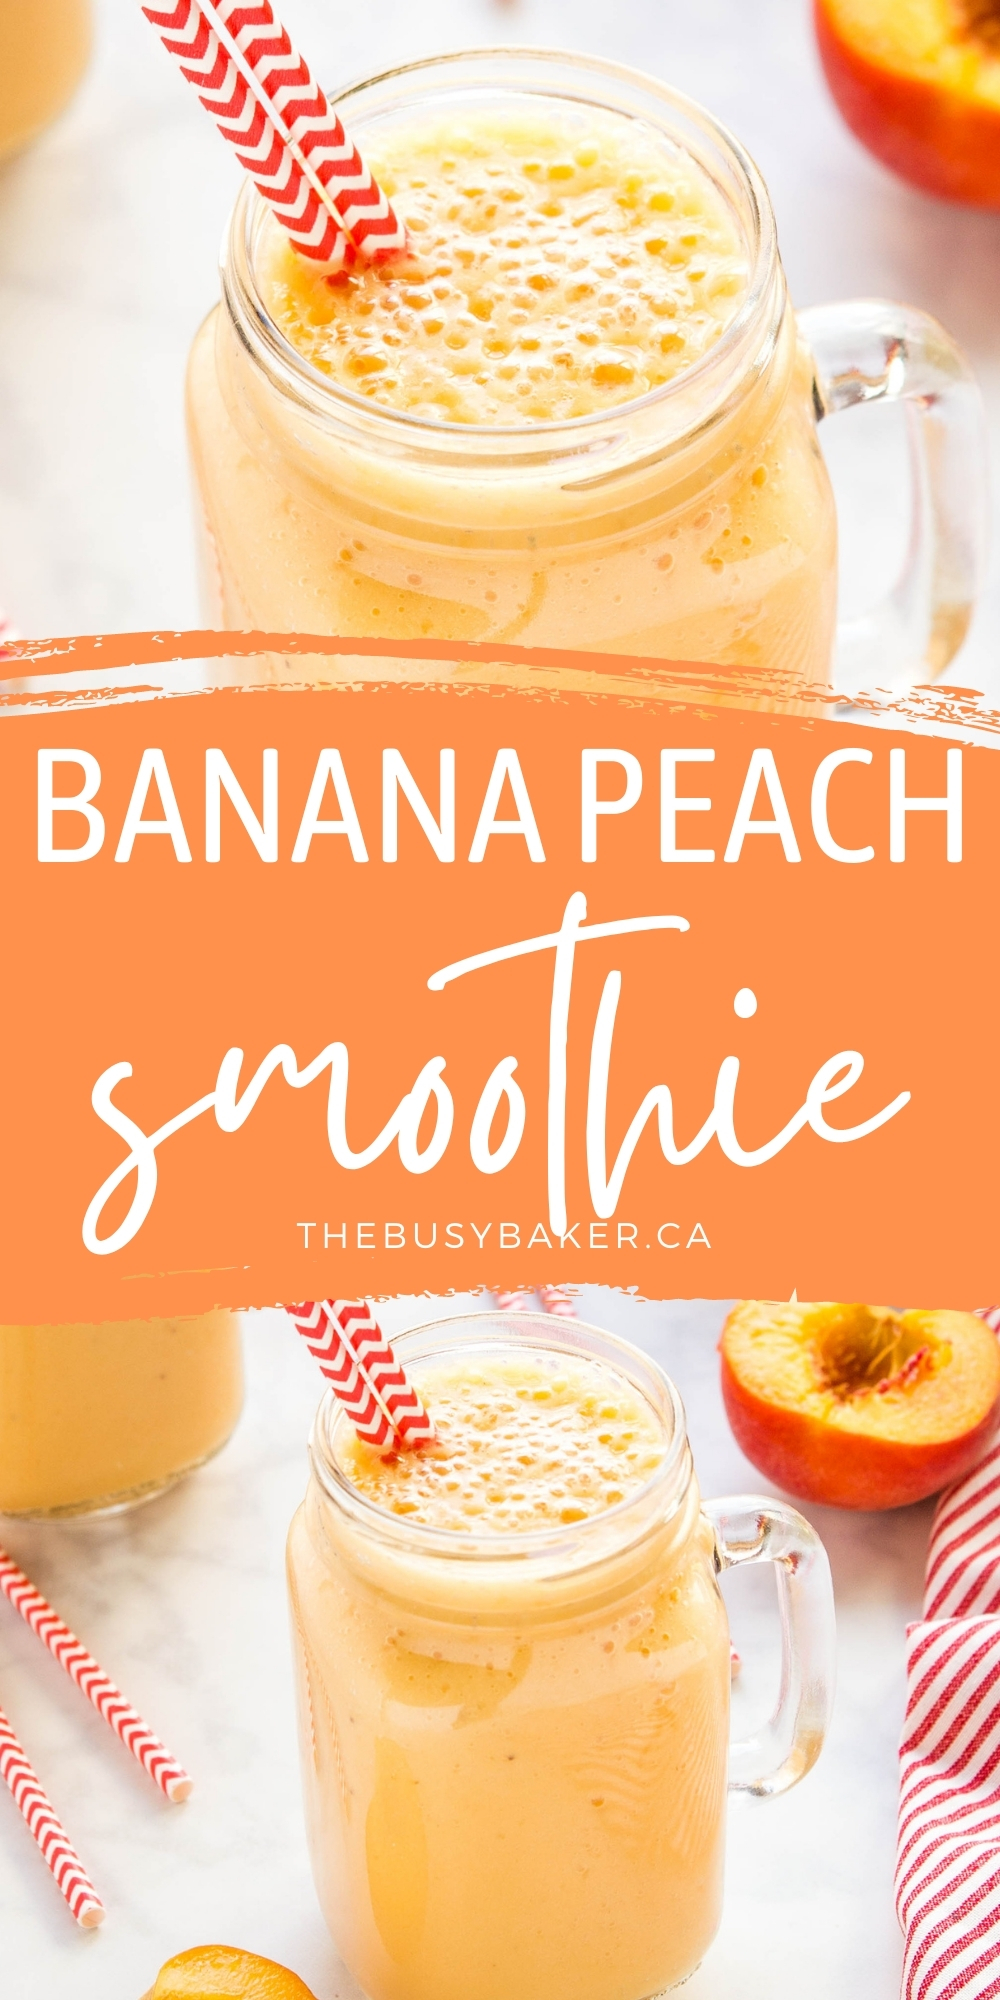 This Banana Peach Smoothie is creamy and delicious, packed with bananas and peaches - nutritious, dairy-free, and easy to make for a post-workout snack or breakfast!Recipe from thebusybaker.ca! #bananapeachsmoothie #smoothie #drink #postworkout #health #healthy #plantbased #dairyfree via @busybakerblog